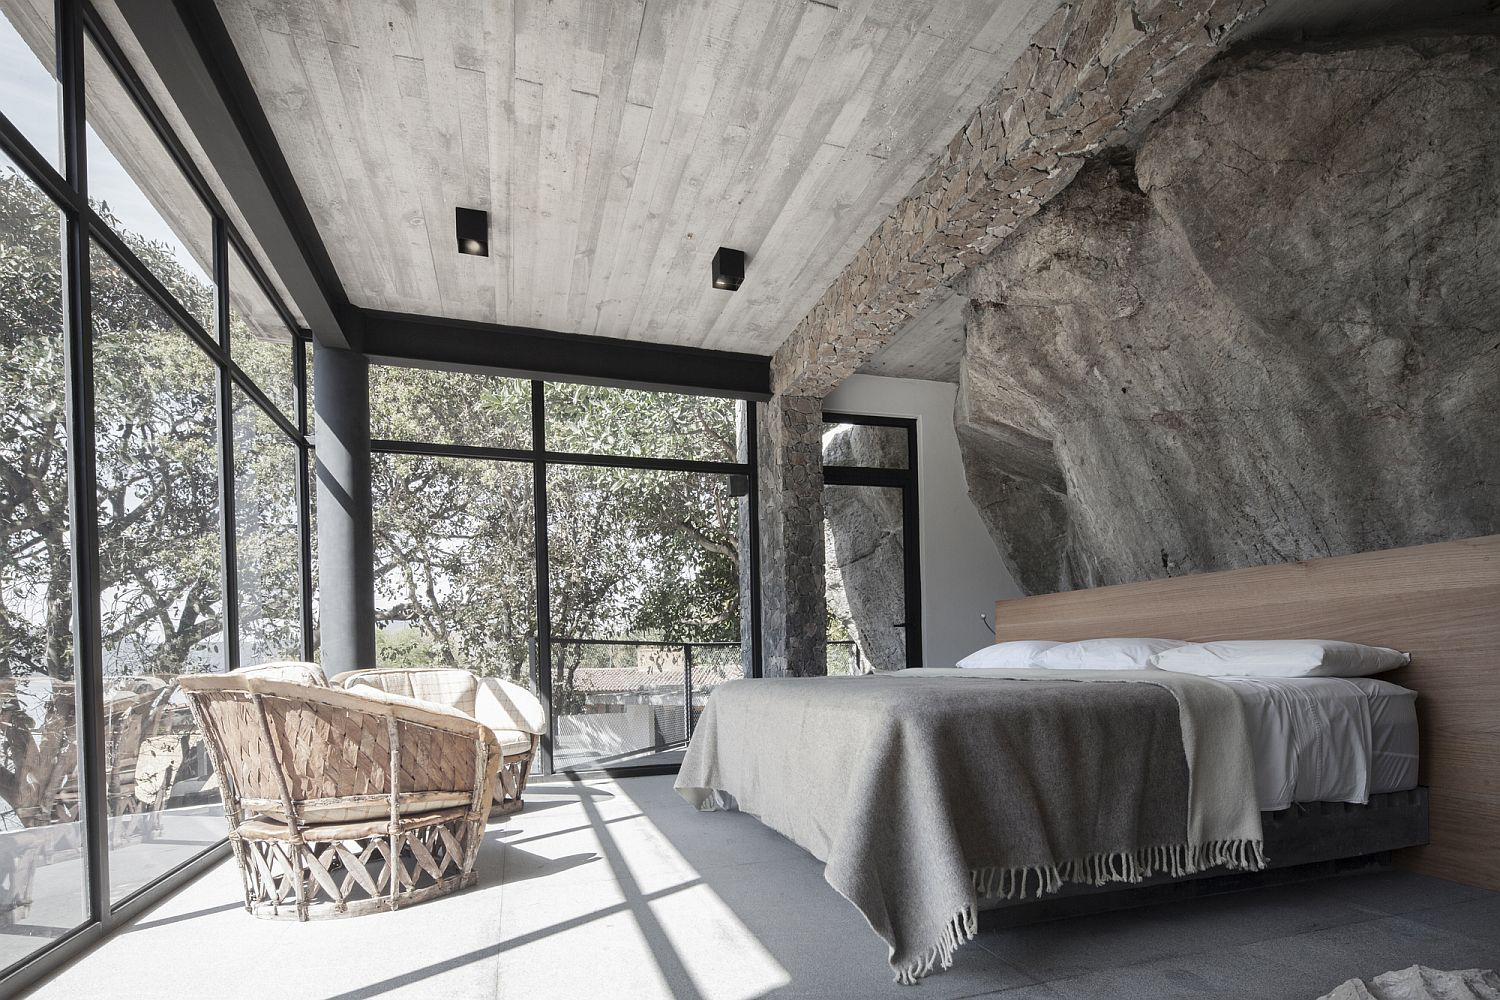 Large natural rock becomes the headboard wall for this contemporary bedroom